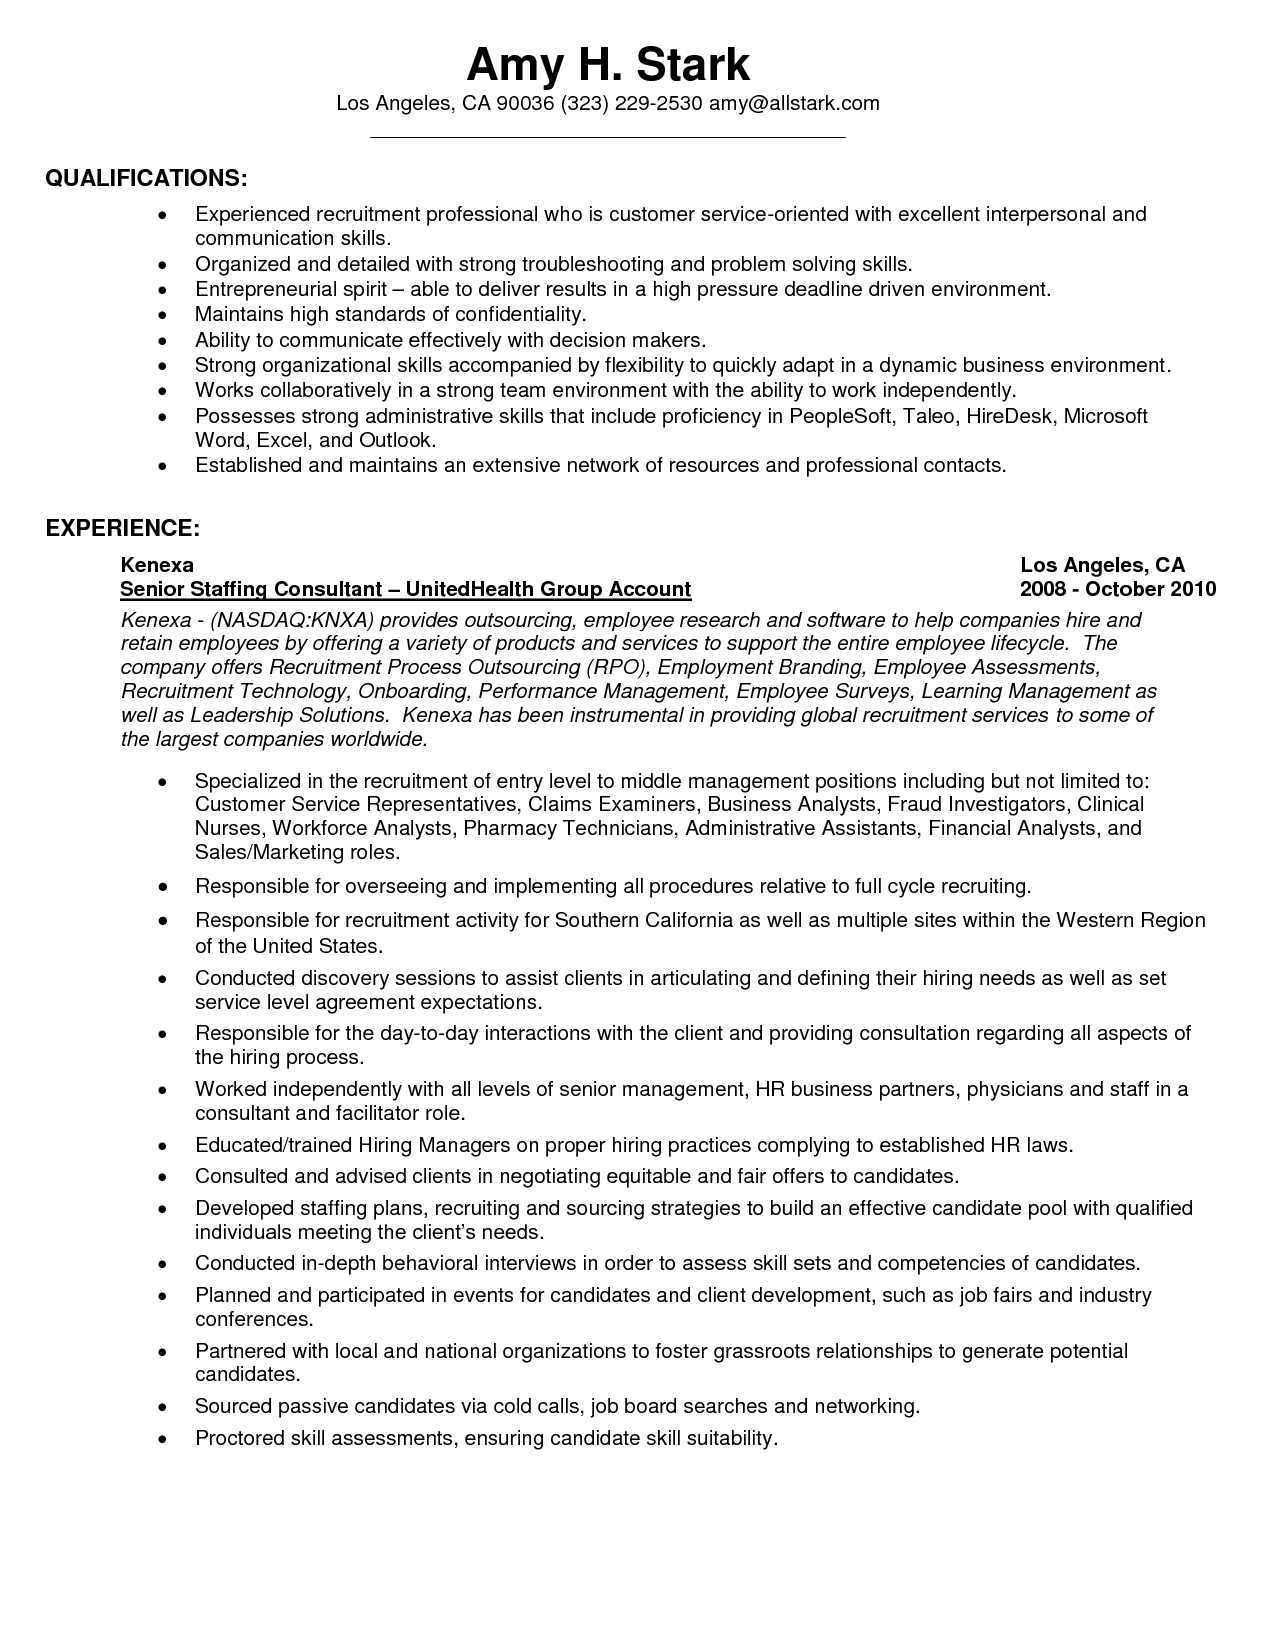 Restaurant Resume Sample Excellent Customer Service Skills Resume  Sample Resume Center